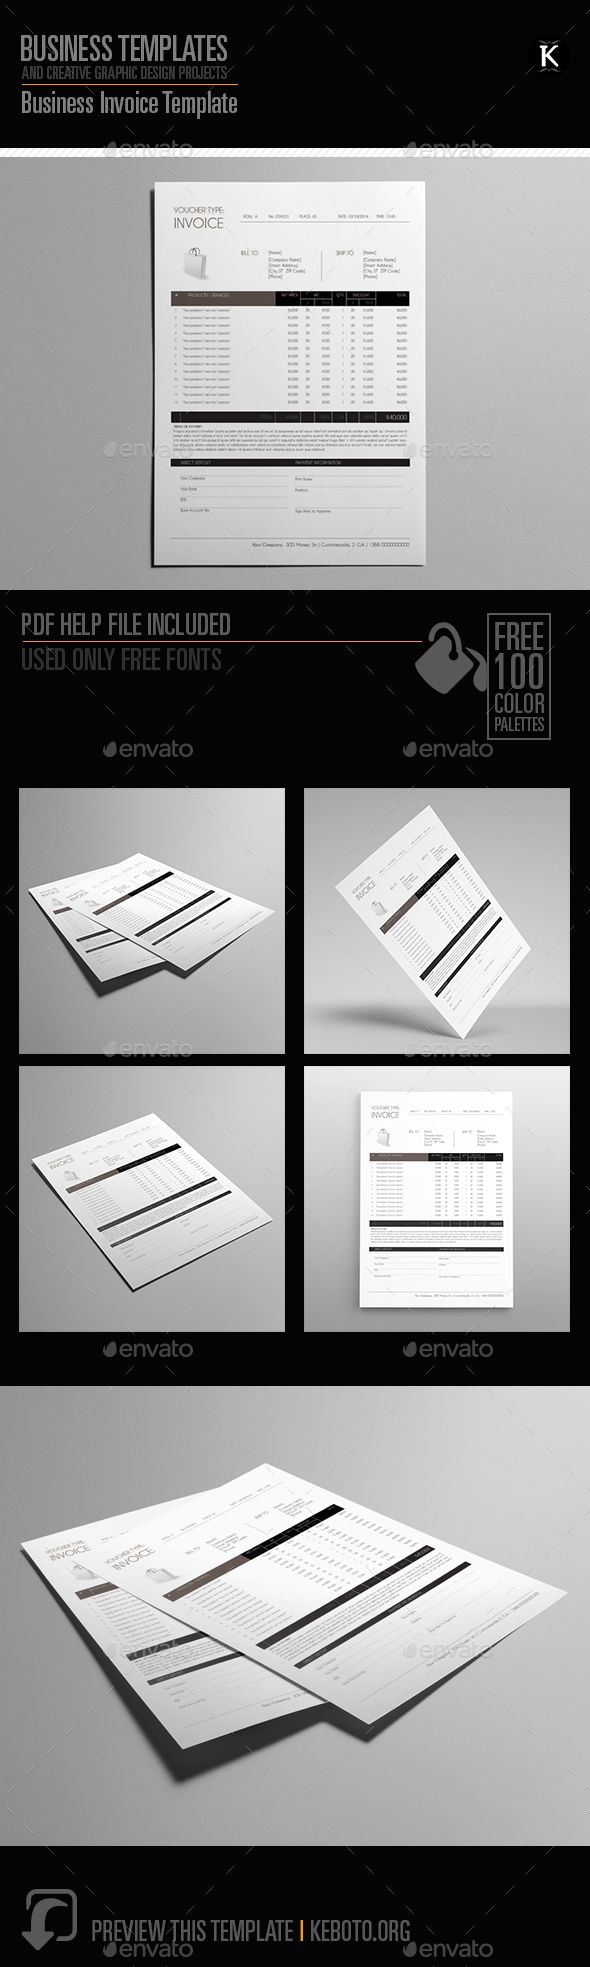 Business invoice template by keboto preview this itemherebusiness business invoice template by keboto preview this itemherebusiness invoice templatesspecifications color model cmykcompatibility yelopaper Image collections